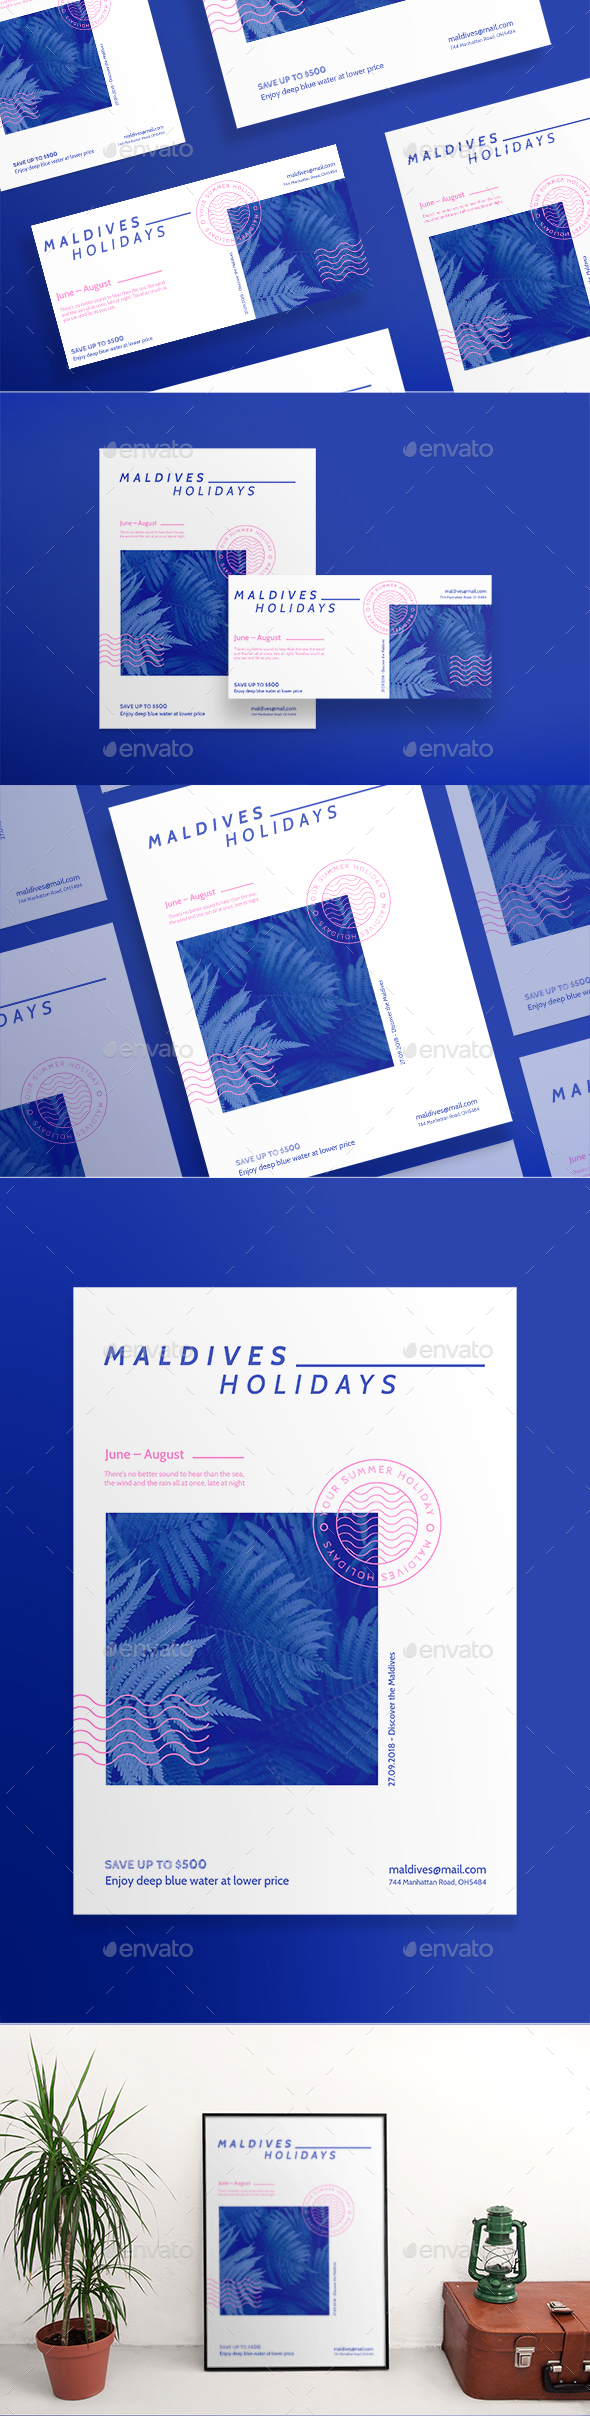 Maldives Holiday Flyers - Corporate Flyers